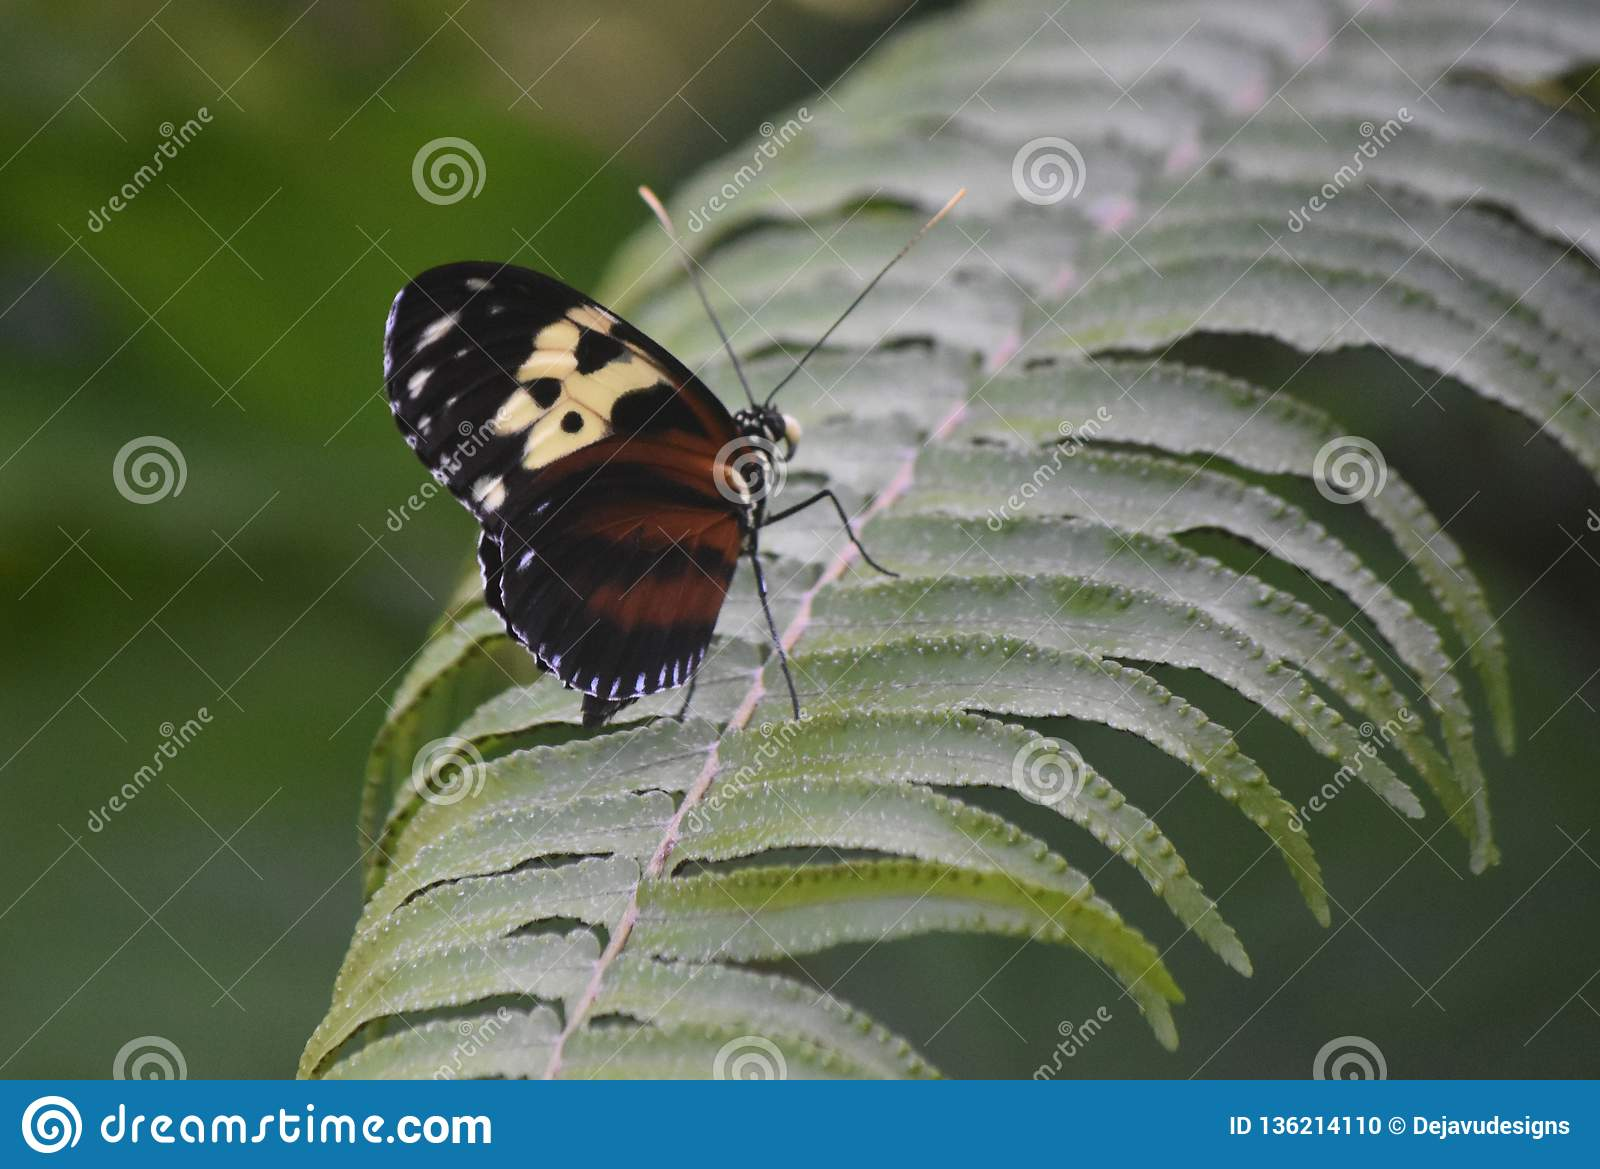 Beautiful Brown and Black Striped Longwing Butterfly in a Garden